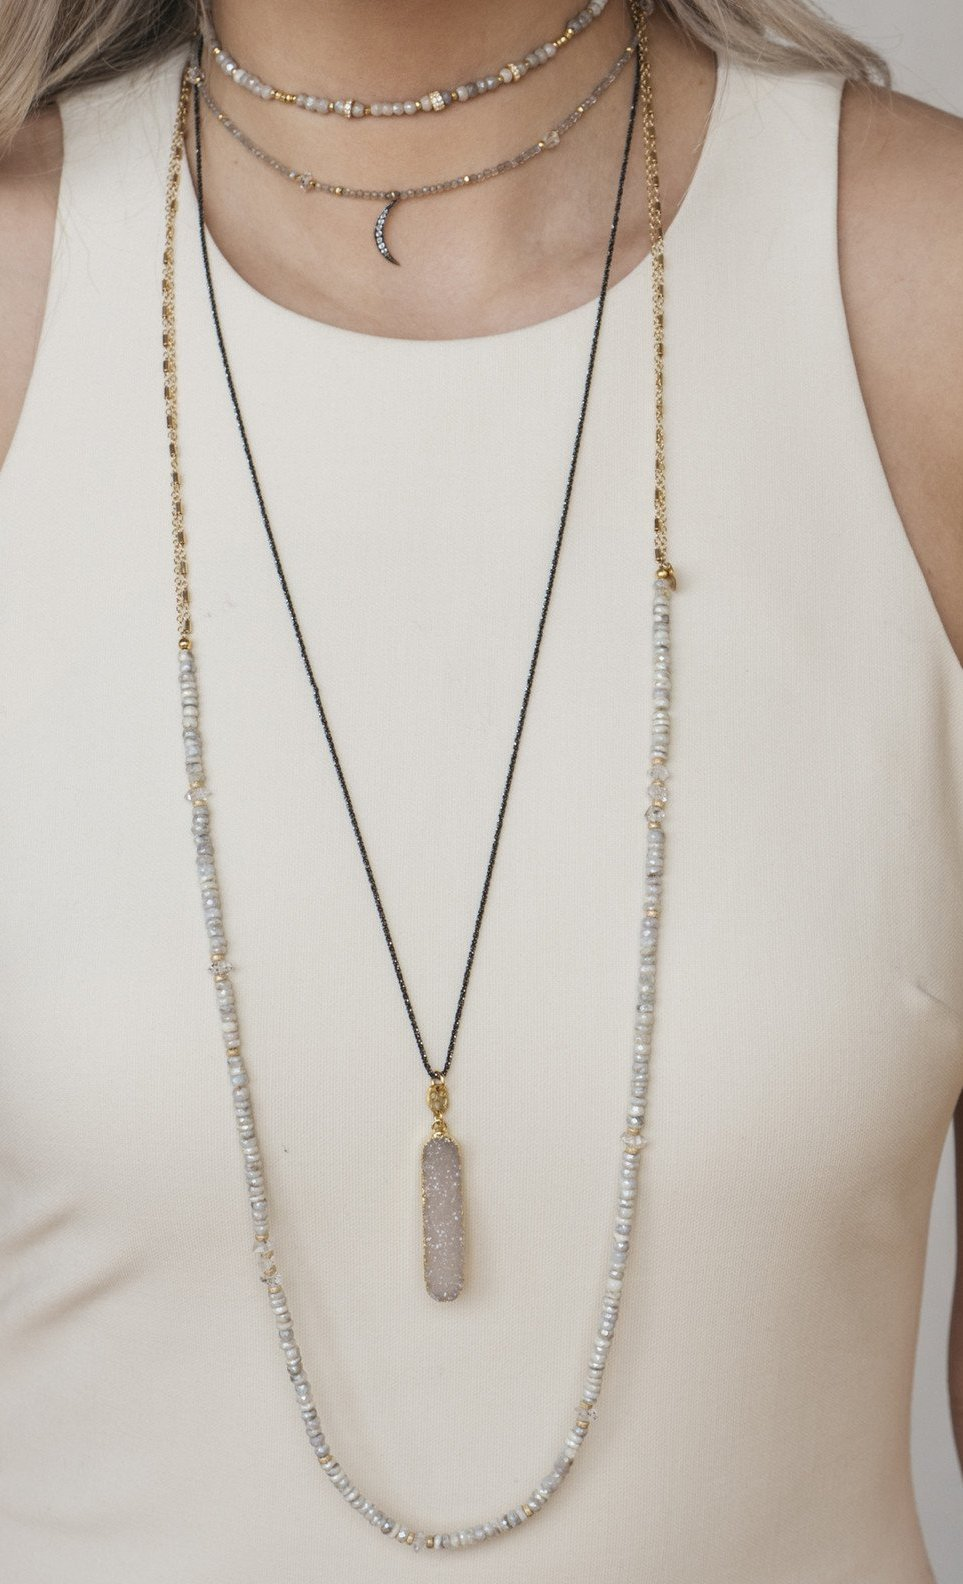 Virago Druzy Necklace